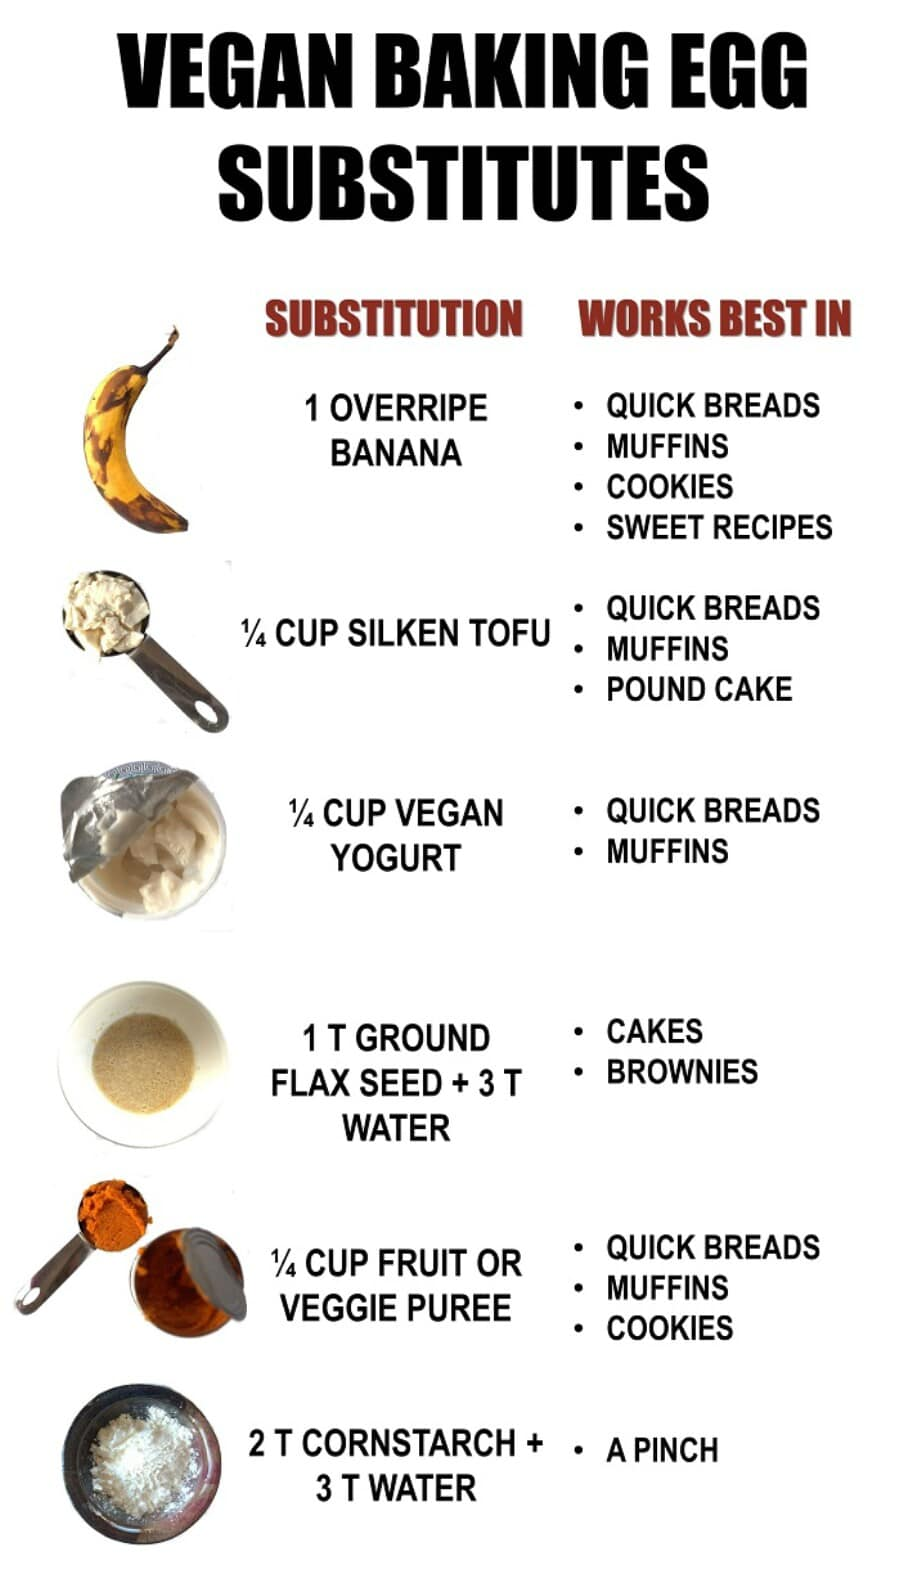 7. Replace your eggs for vegan baking.